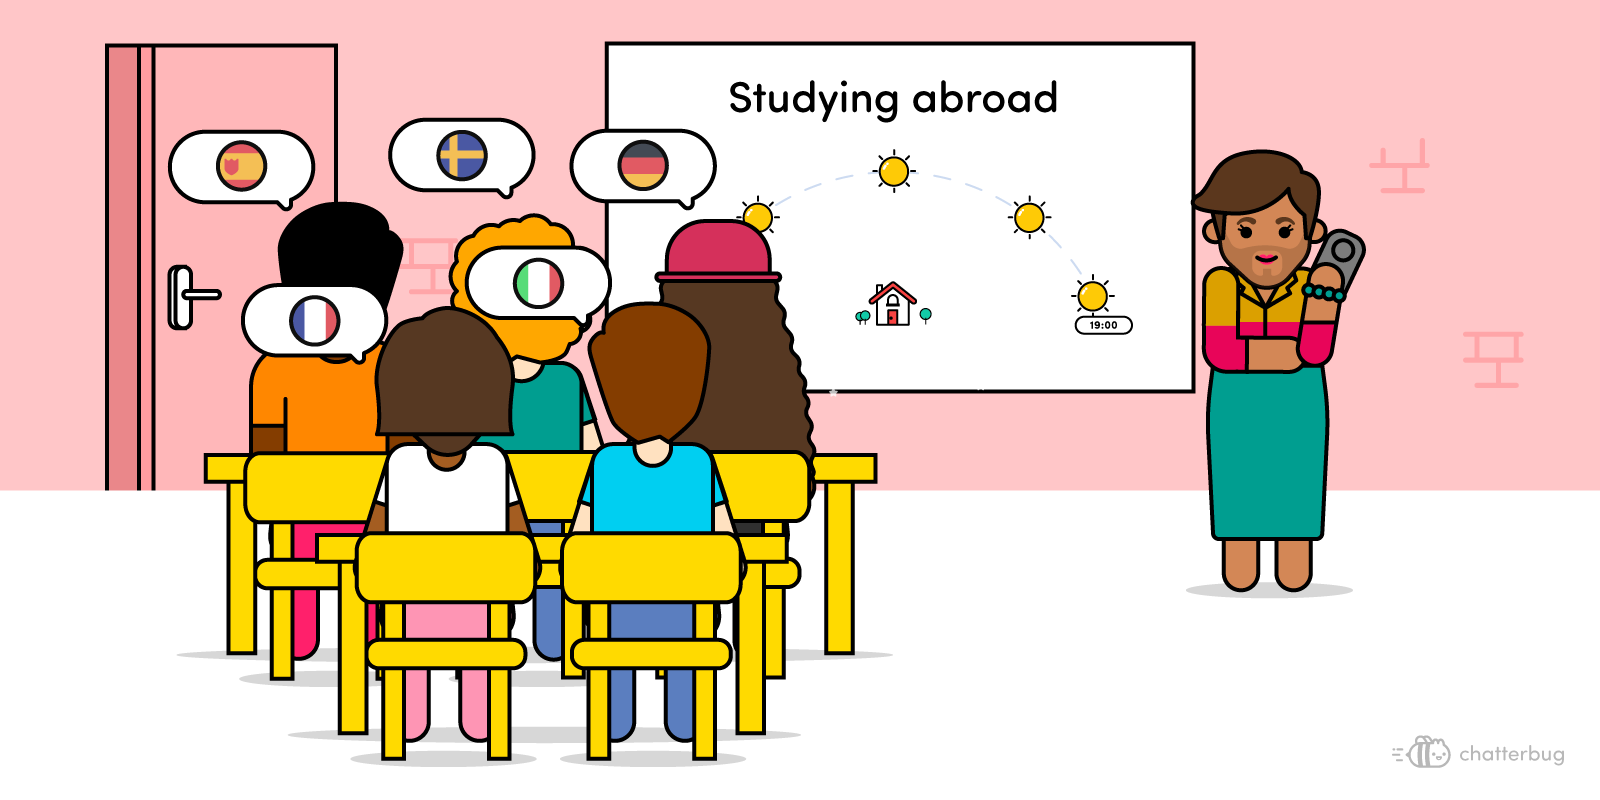 The 5 languages students are learning when studying abroad image